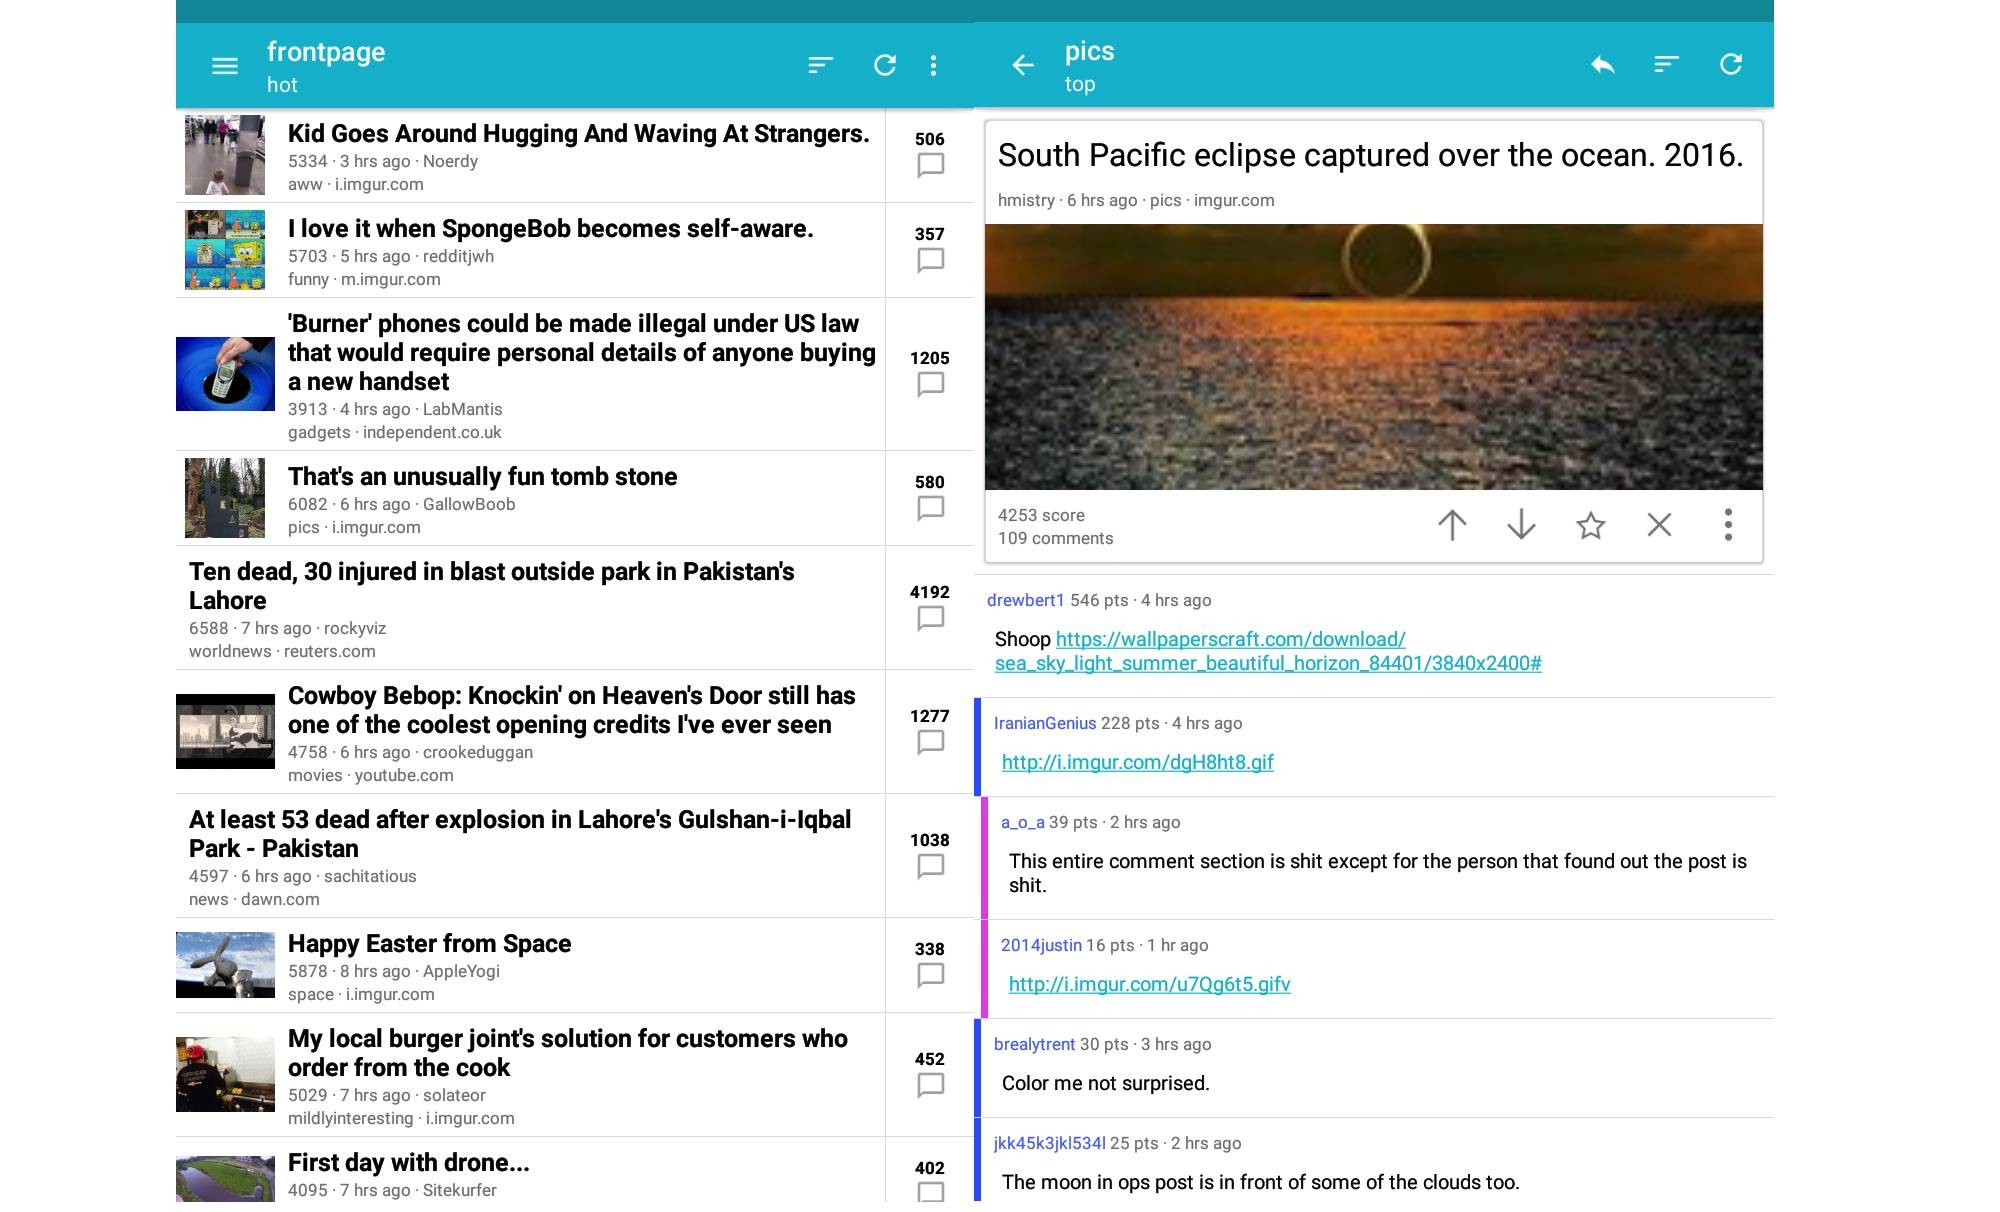 Alien Companion is a new Android reader client for Reddit